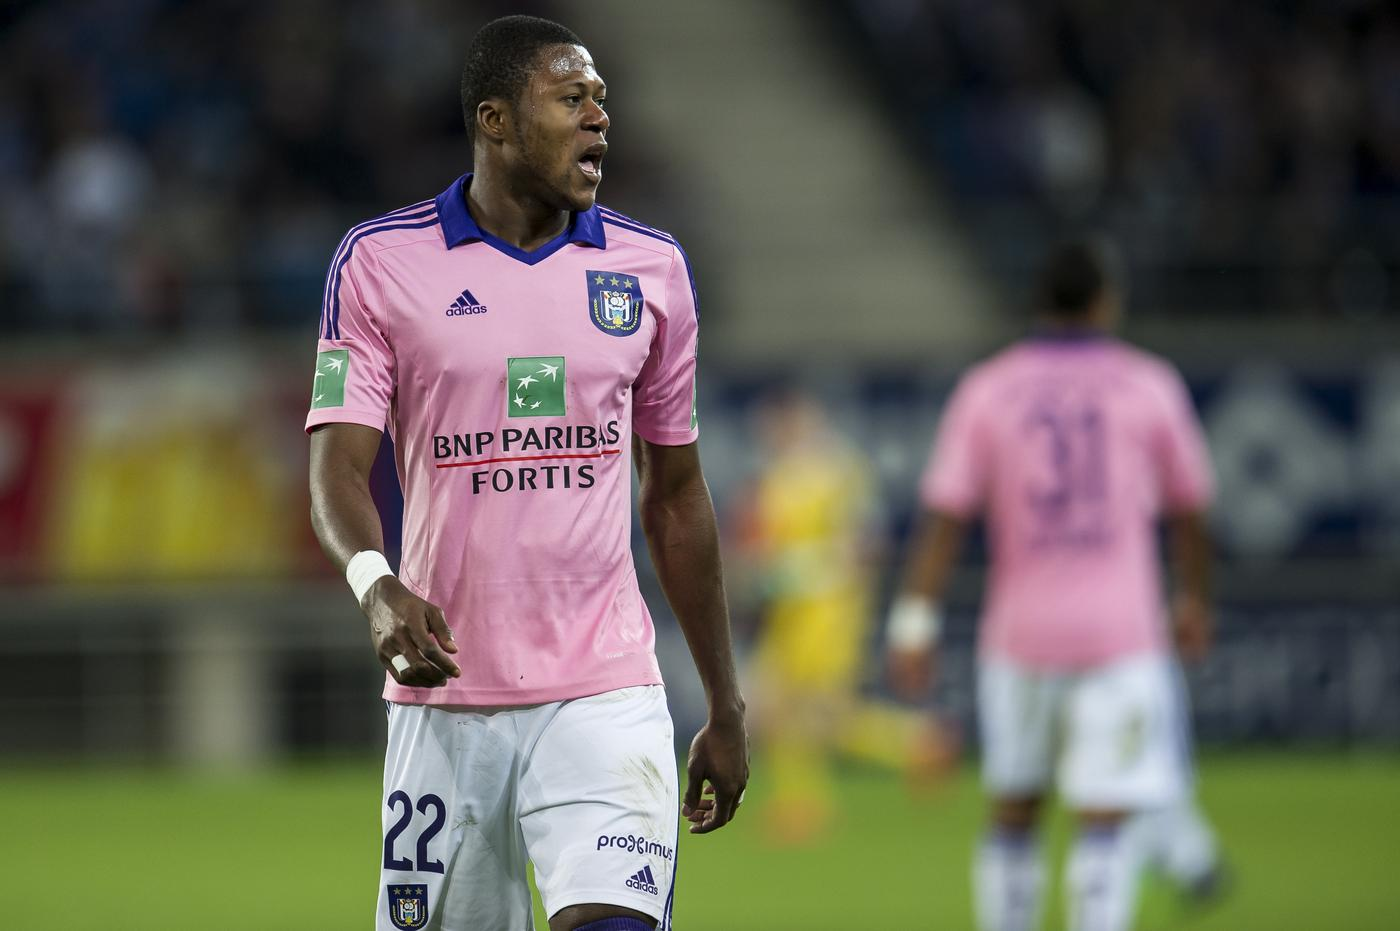 Chancel Mbemba set to complete £8million Newcastle United transfer